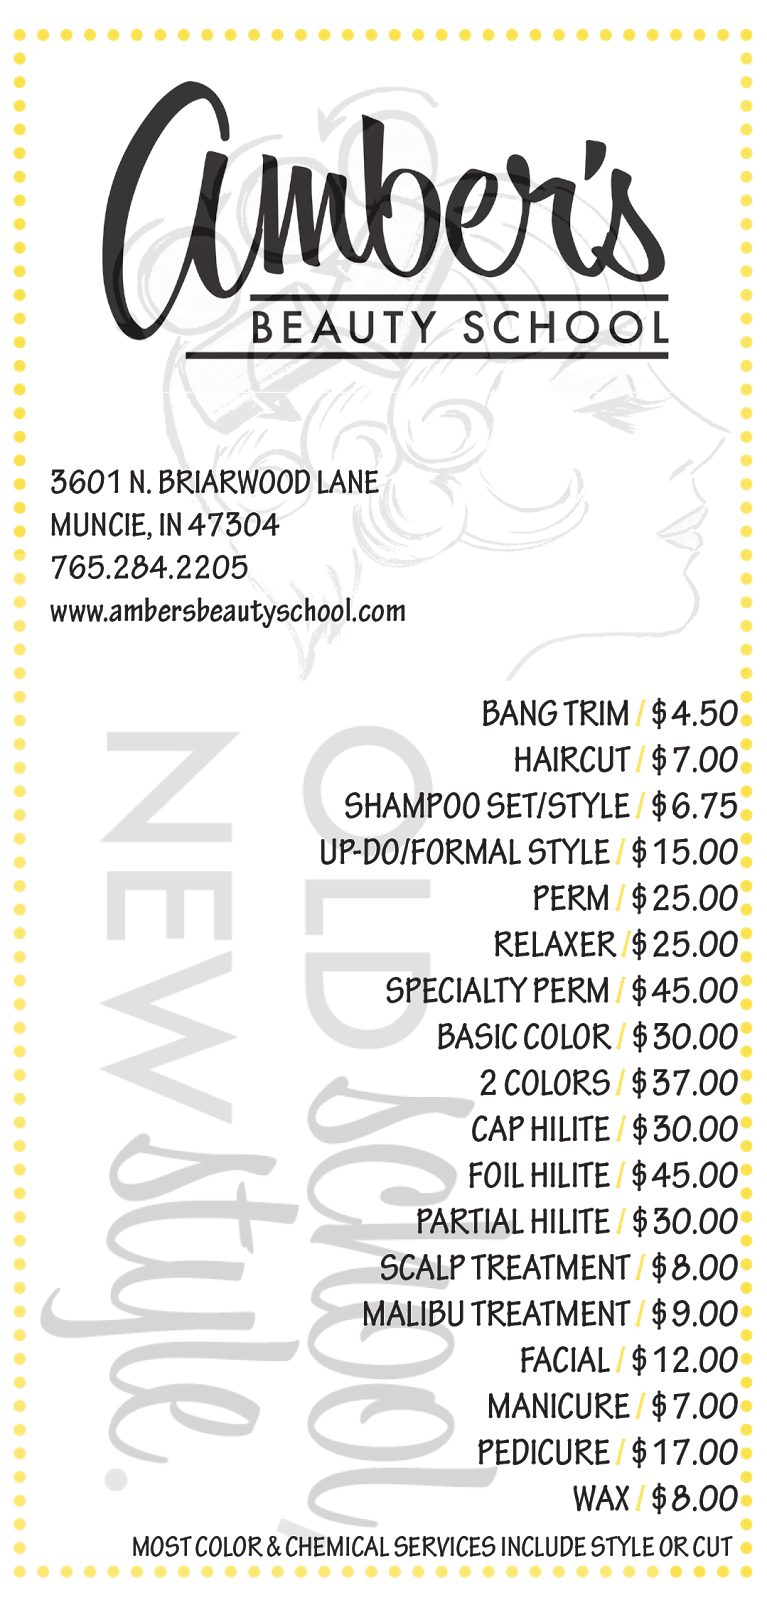 Call Us At 765 284 2205 To Schedule Your Appointment Today Home Hair Salons Beauty School Salon Services